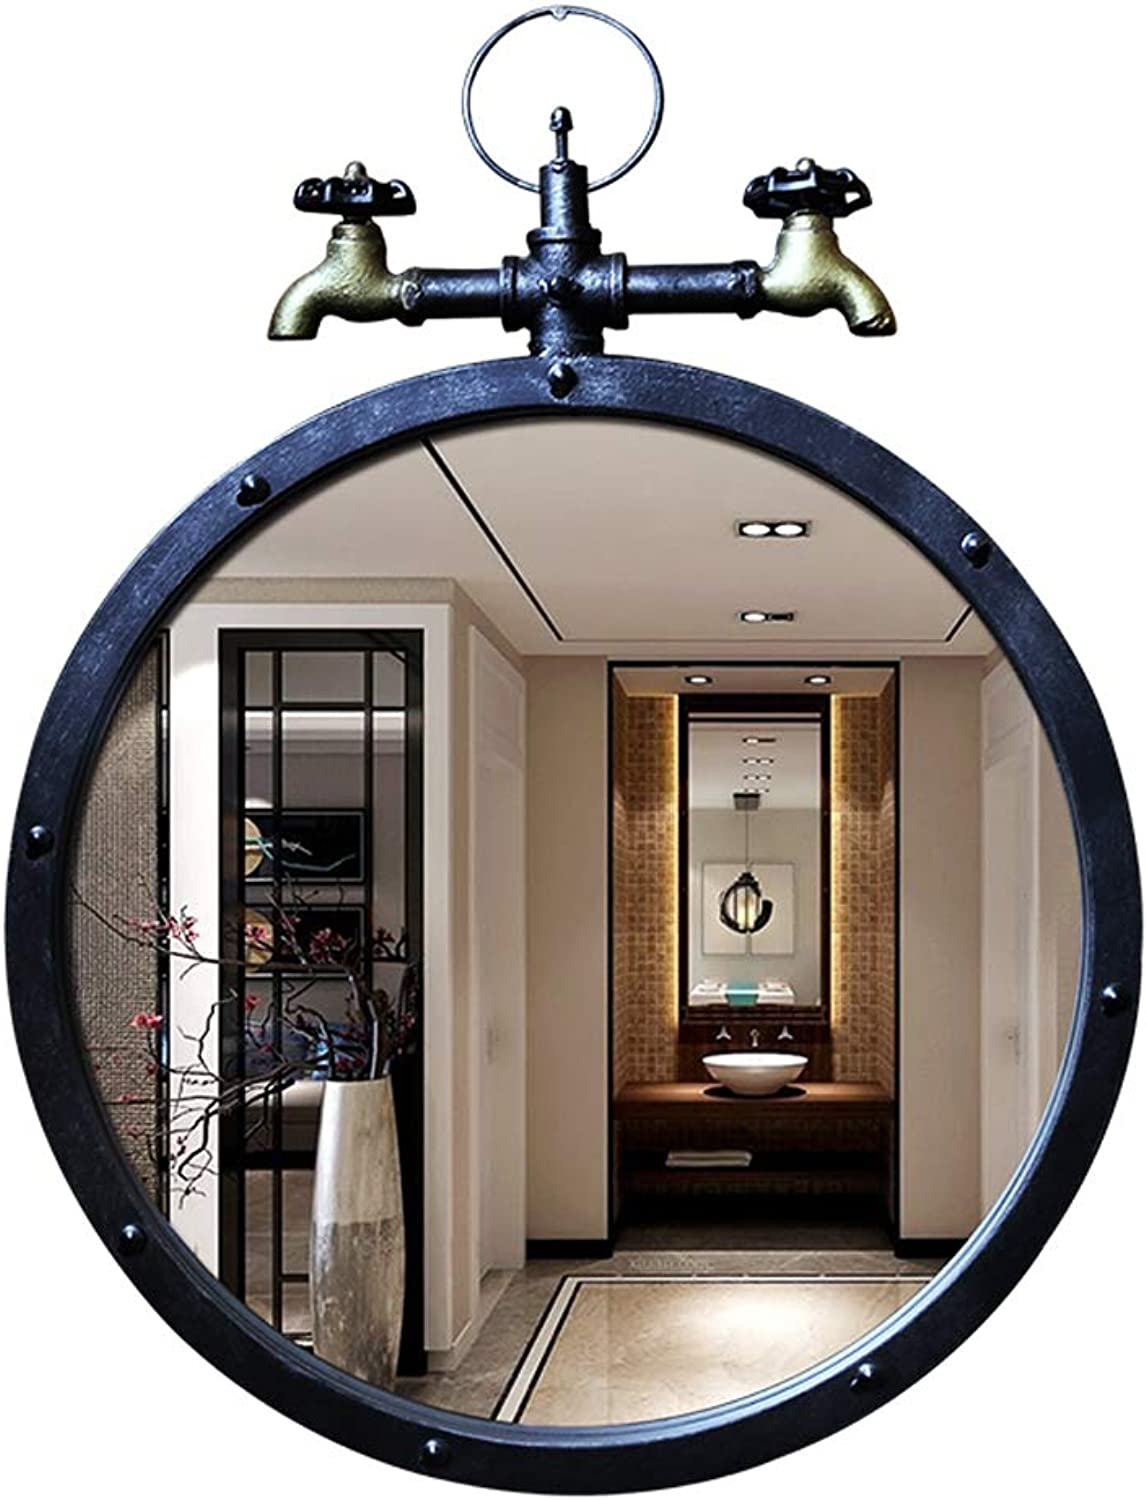 Decorative Mirror Bathroom Round Wall Vintage Metal Frame Hang Mirror 50CM(20Inch) Vanity Makeup Art Mirror for Entry Living Room and More